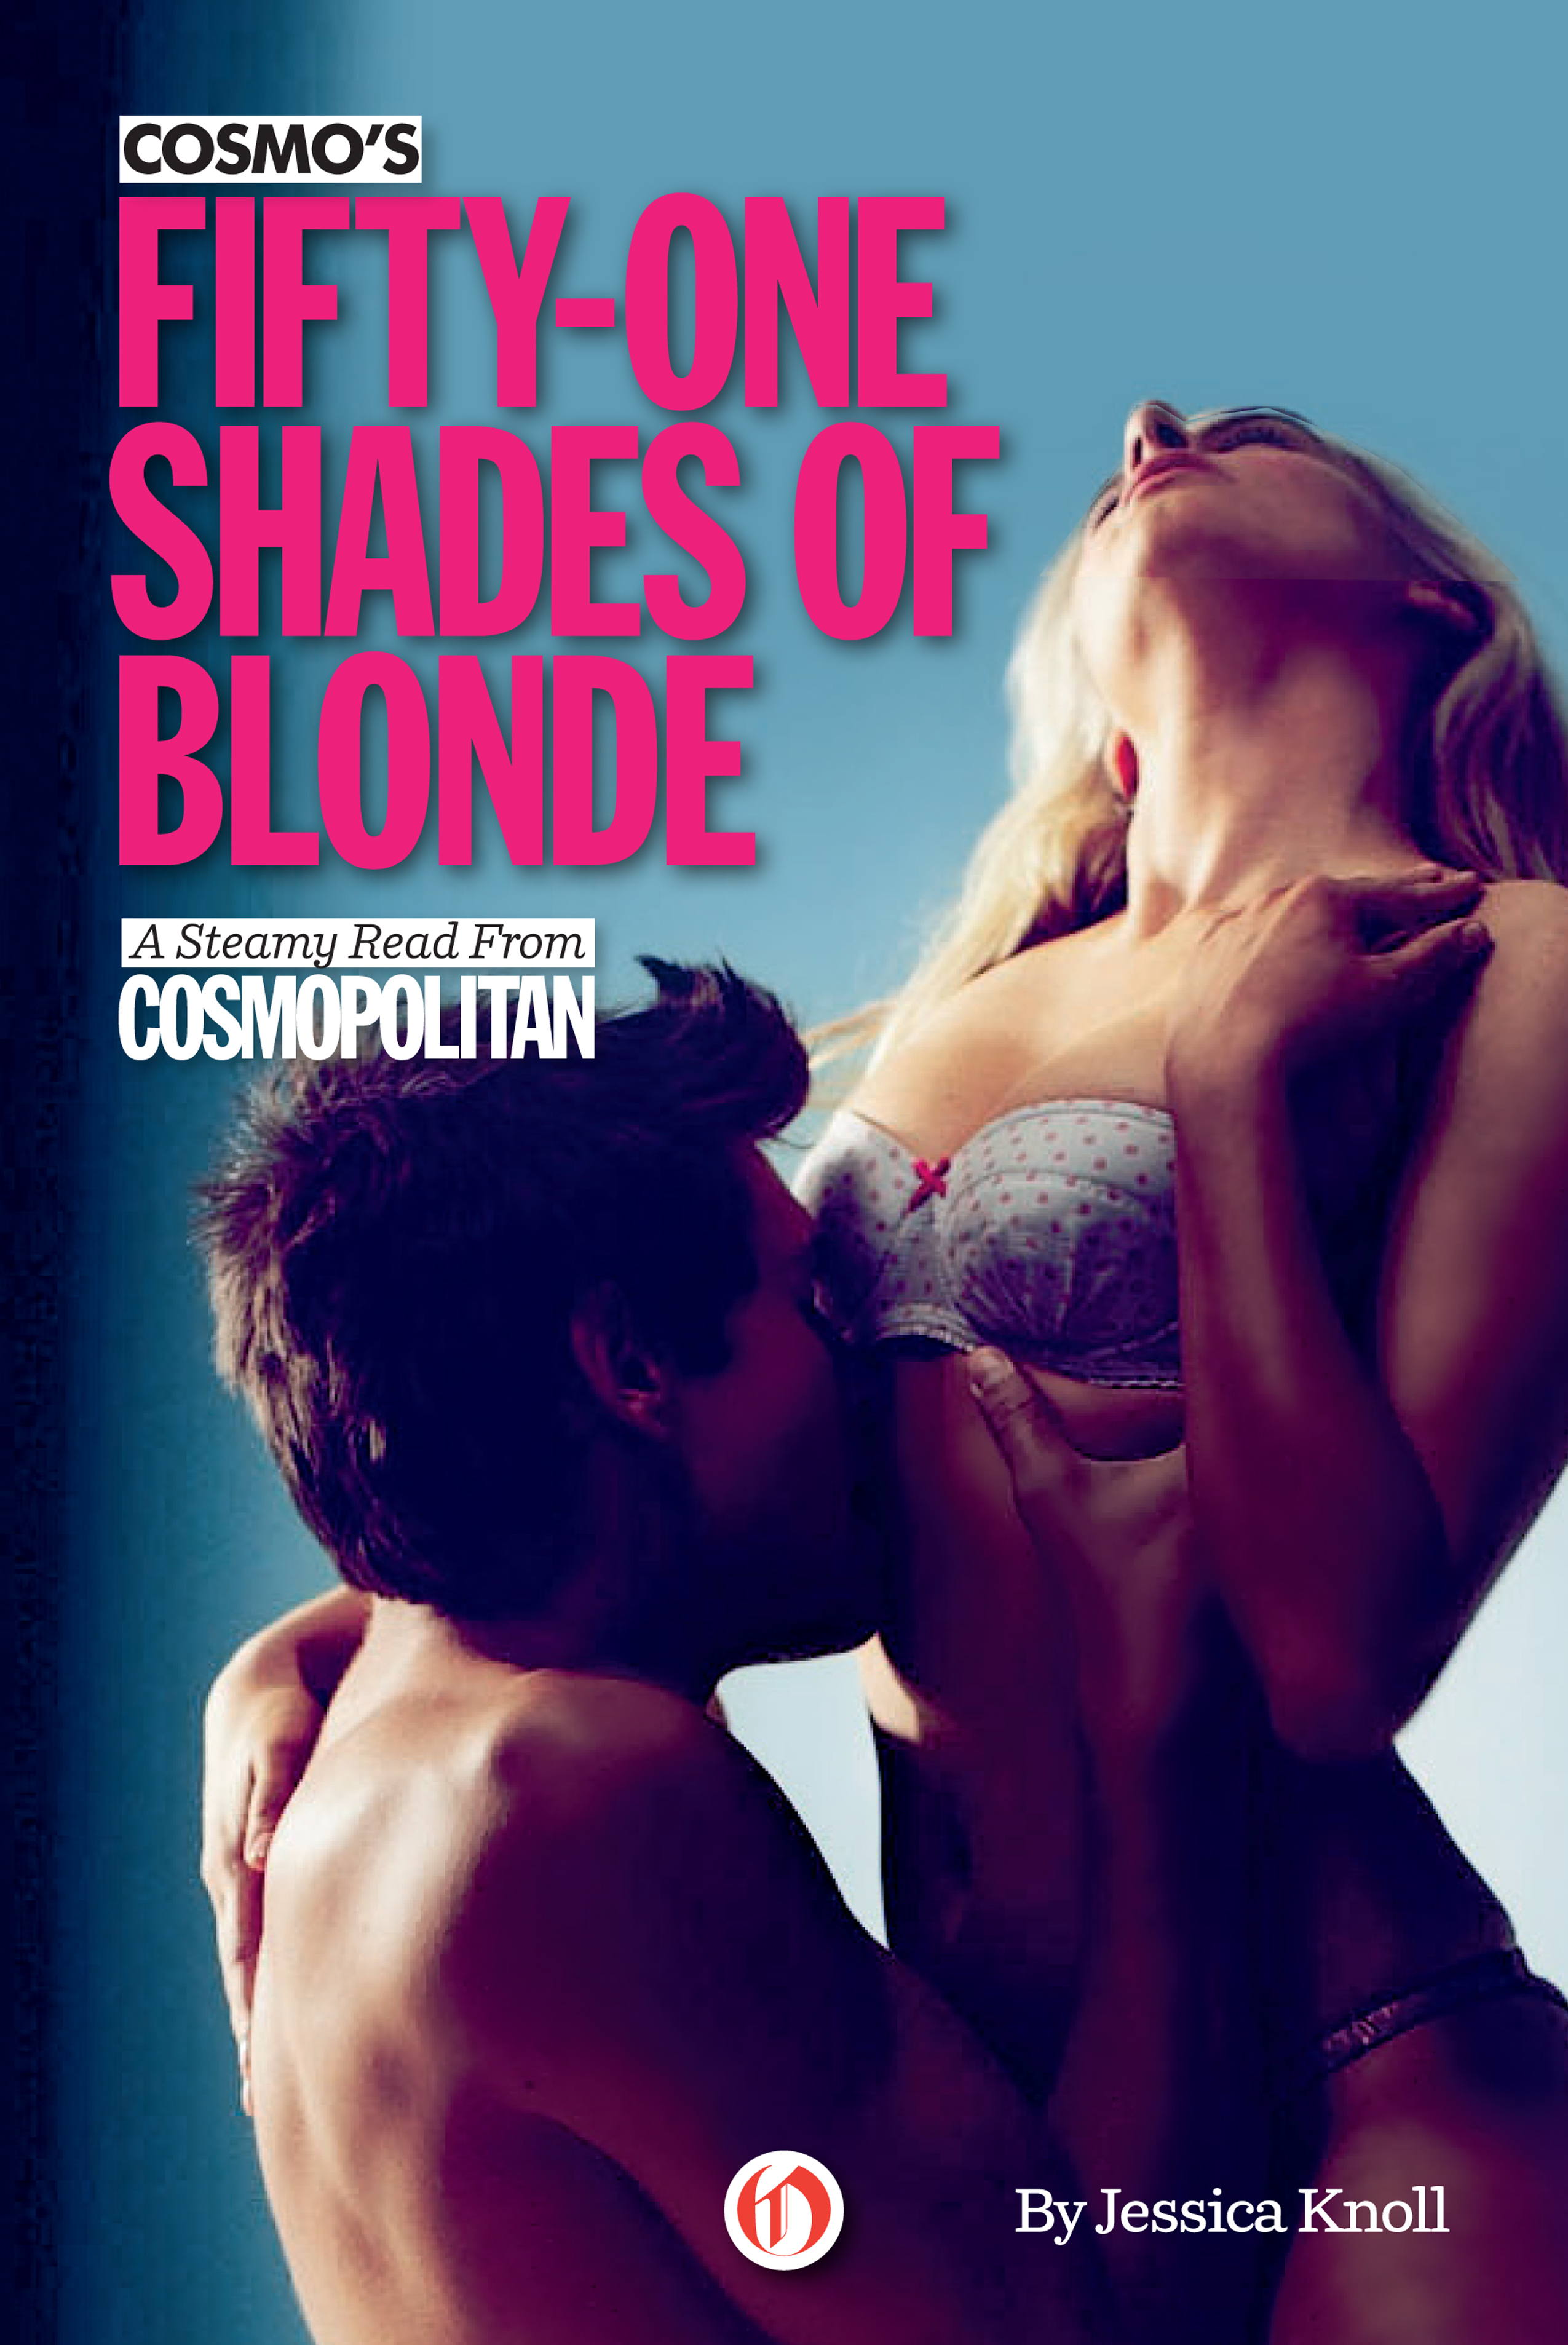 Cosmo's Fifty-One Shades of Blonde By: Jessica Knoll